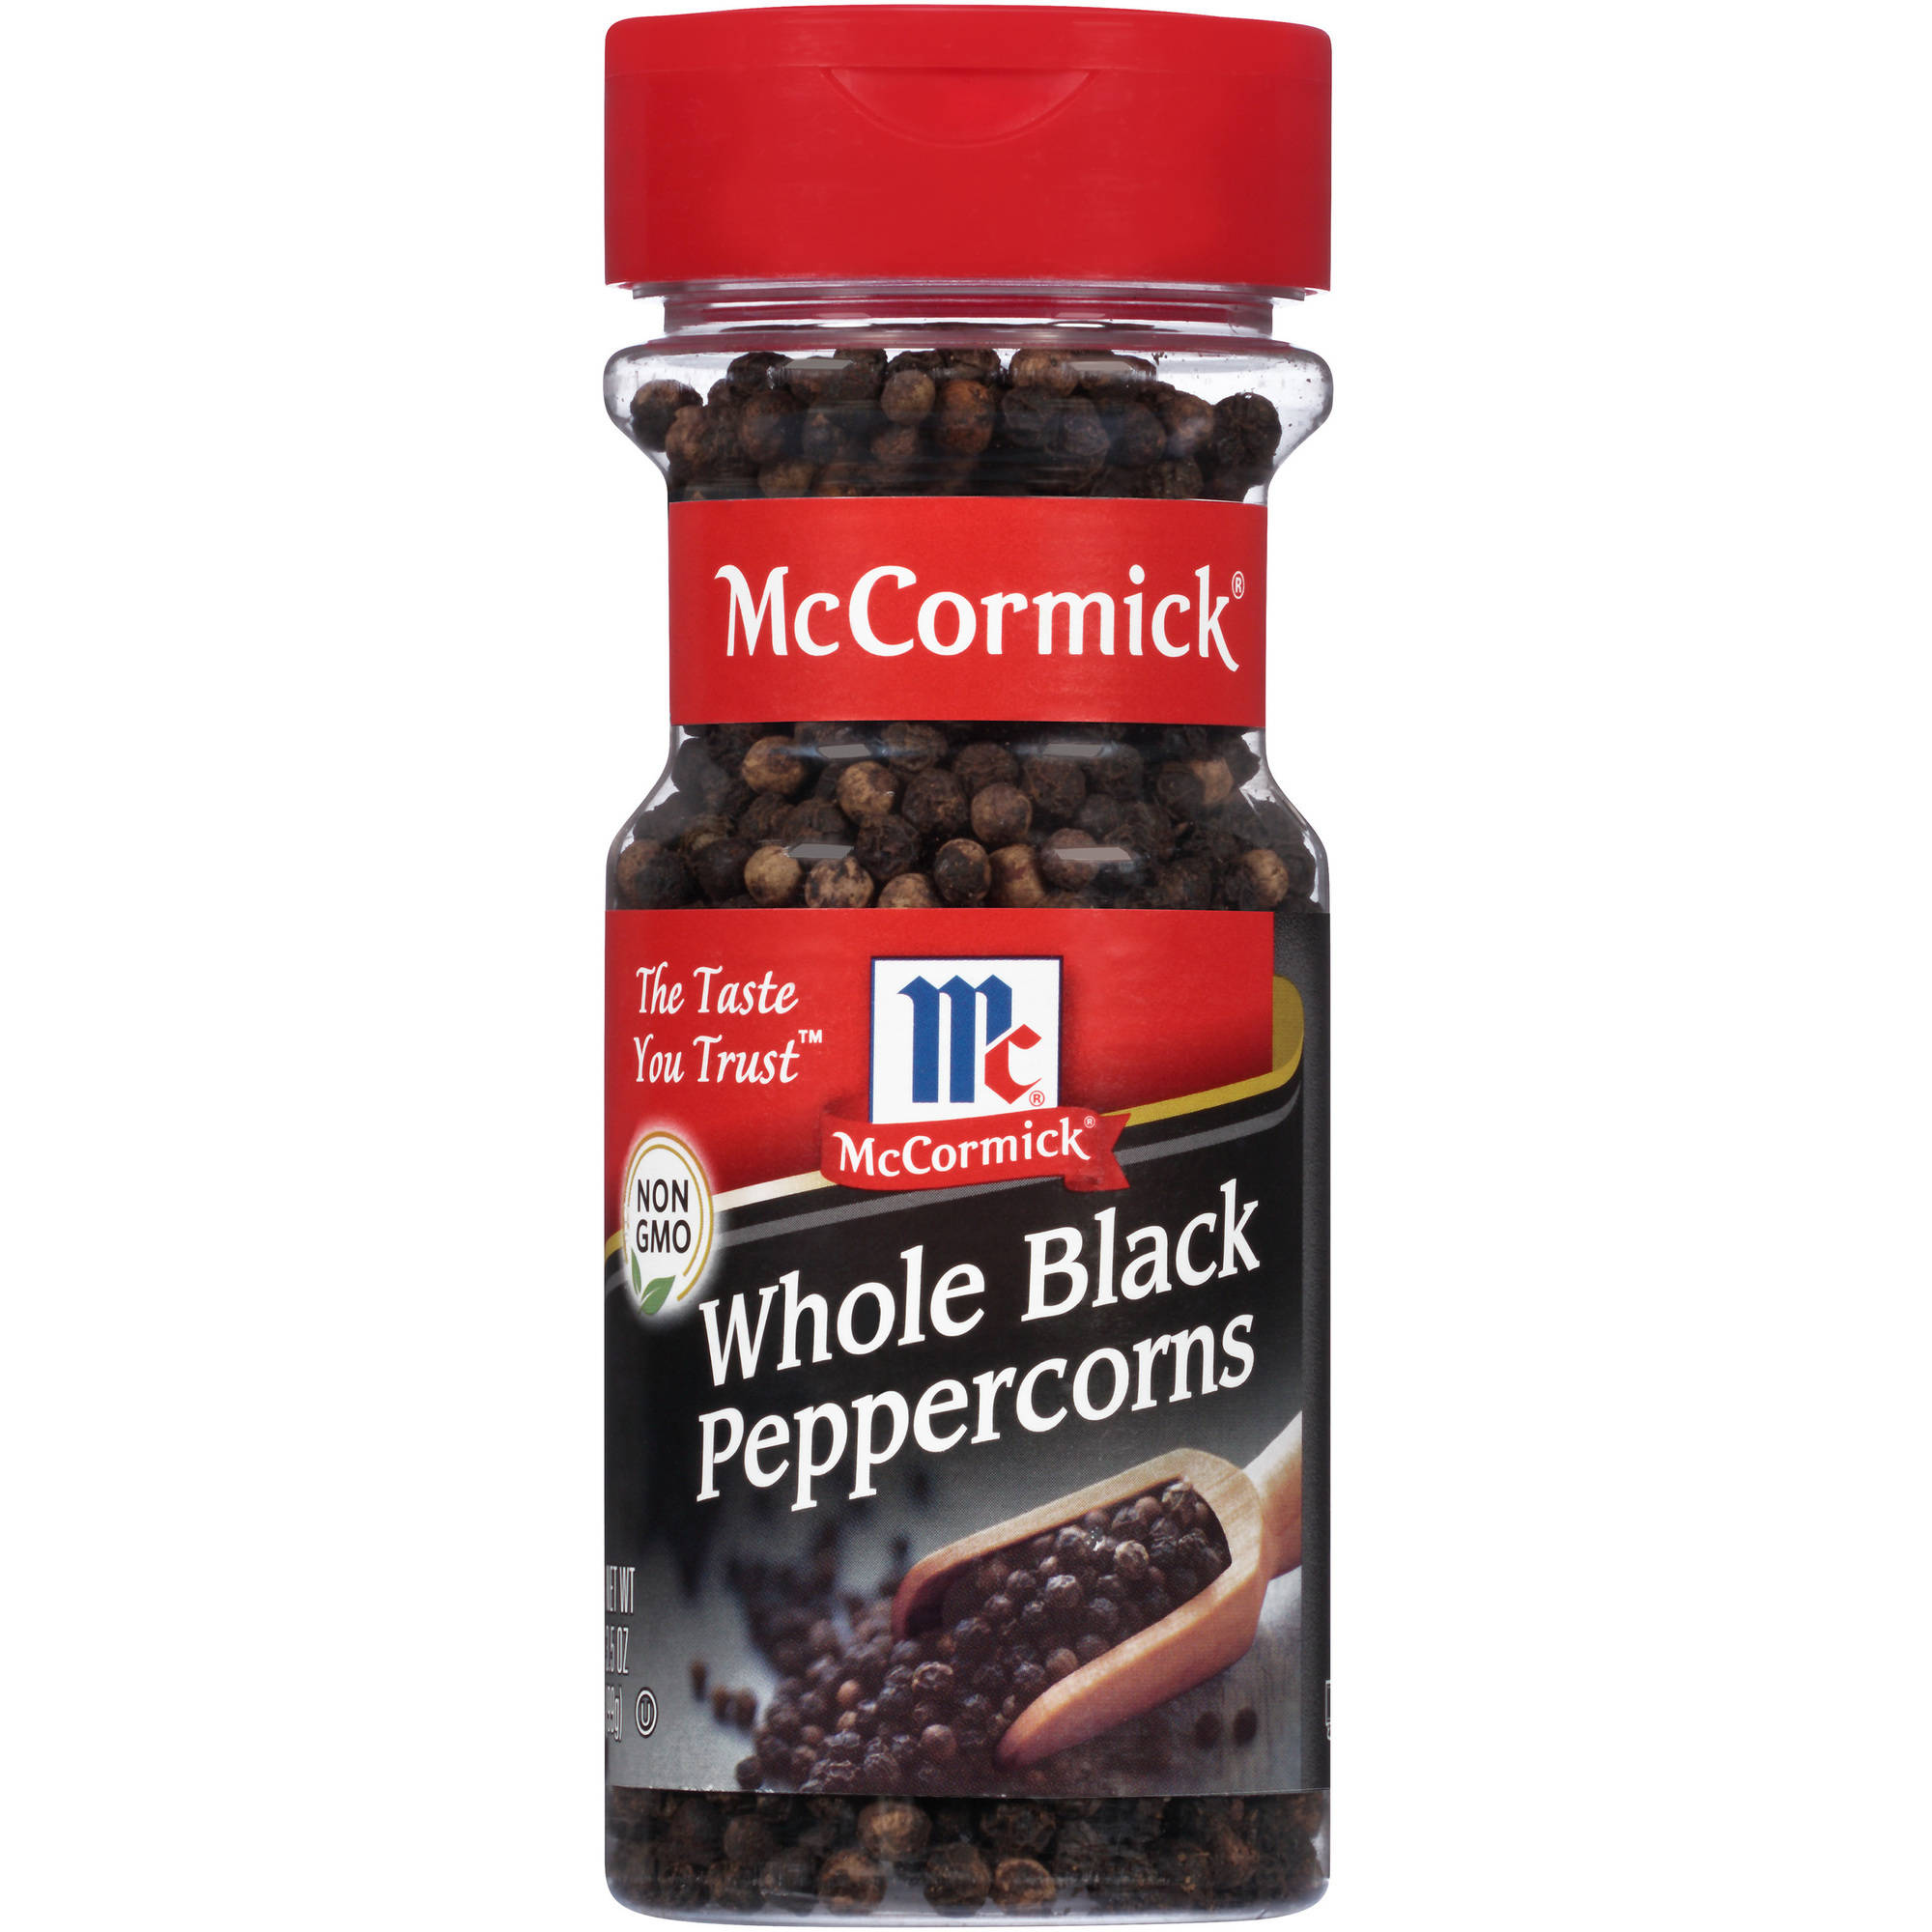 McCormick Whole Black Peppercorns, 3.5 oz